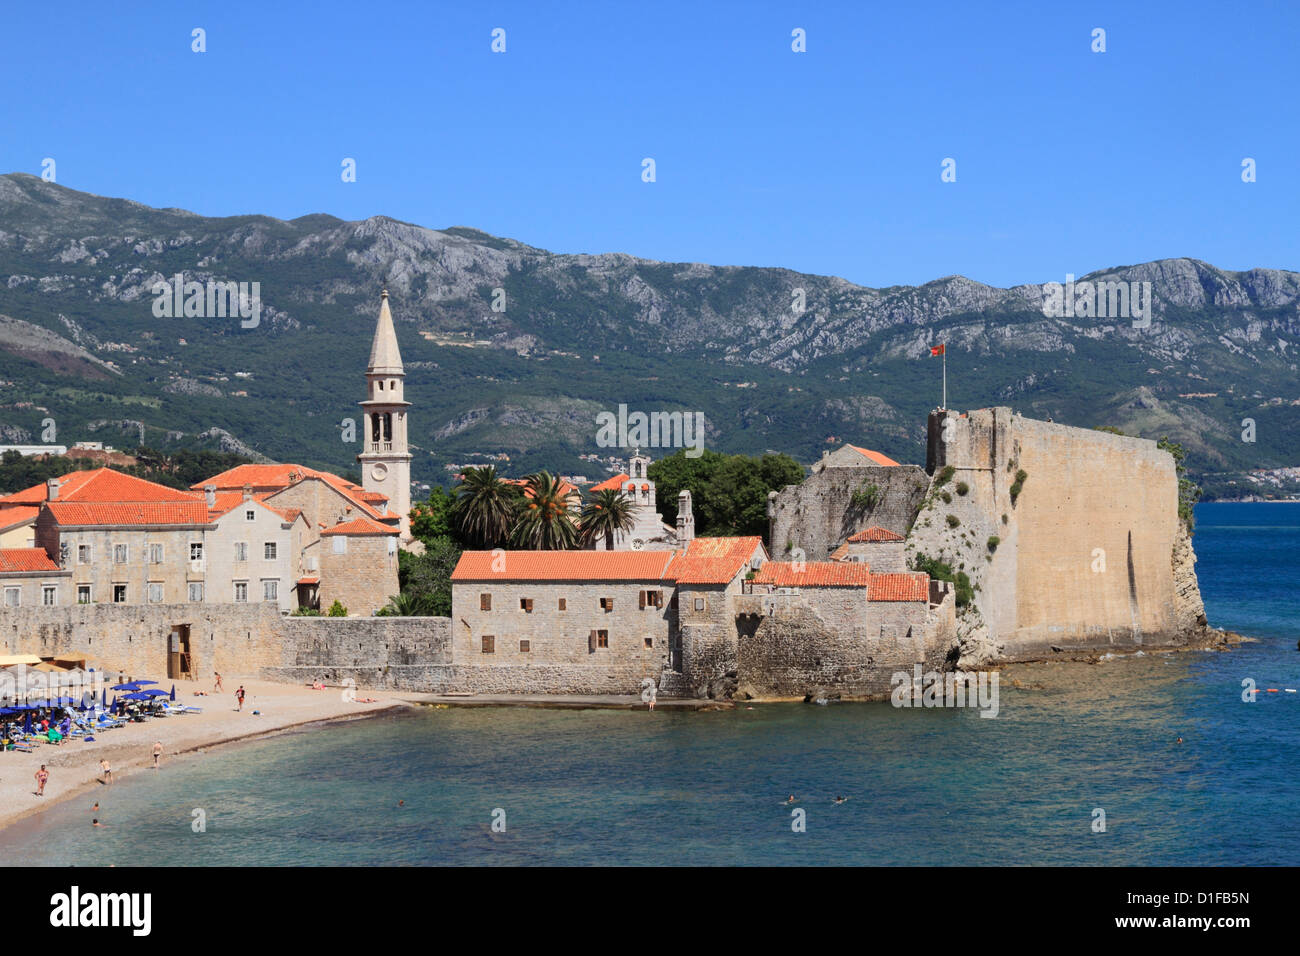 Budva old town, Montenegro, Europe - Stock Image